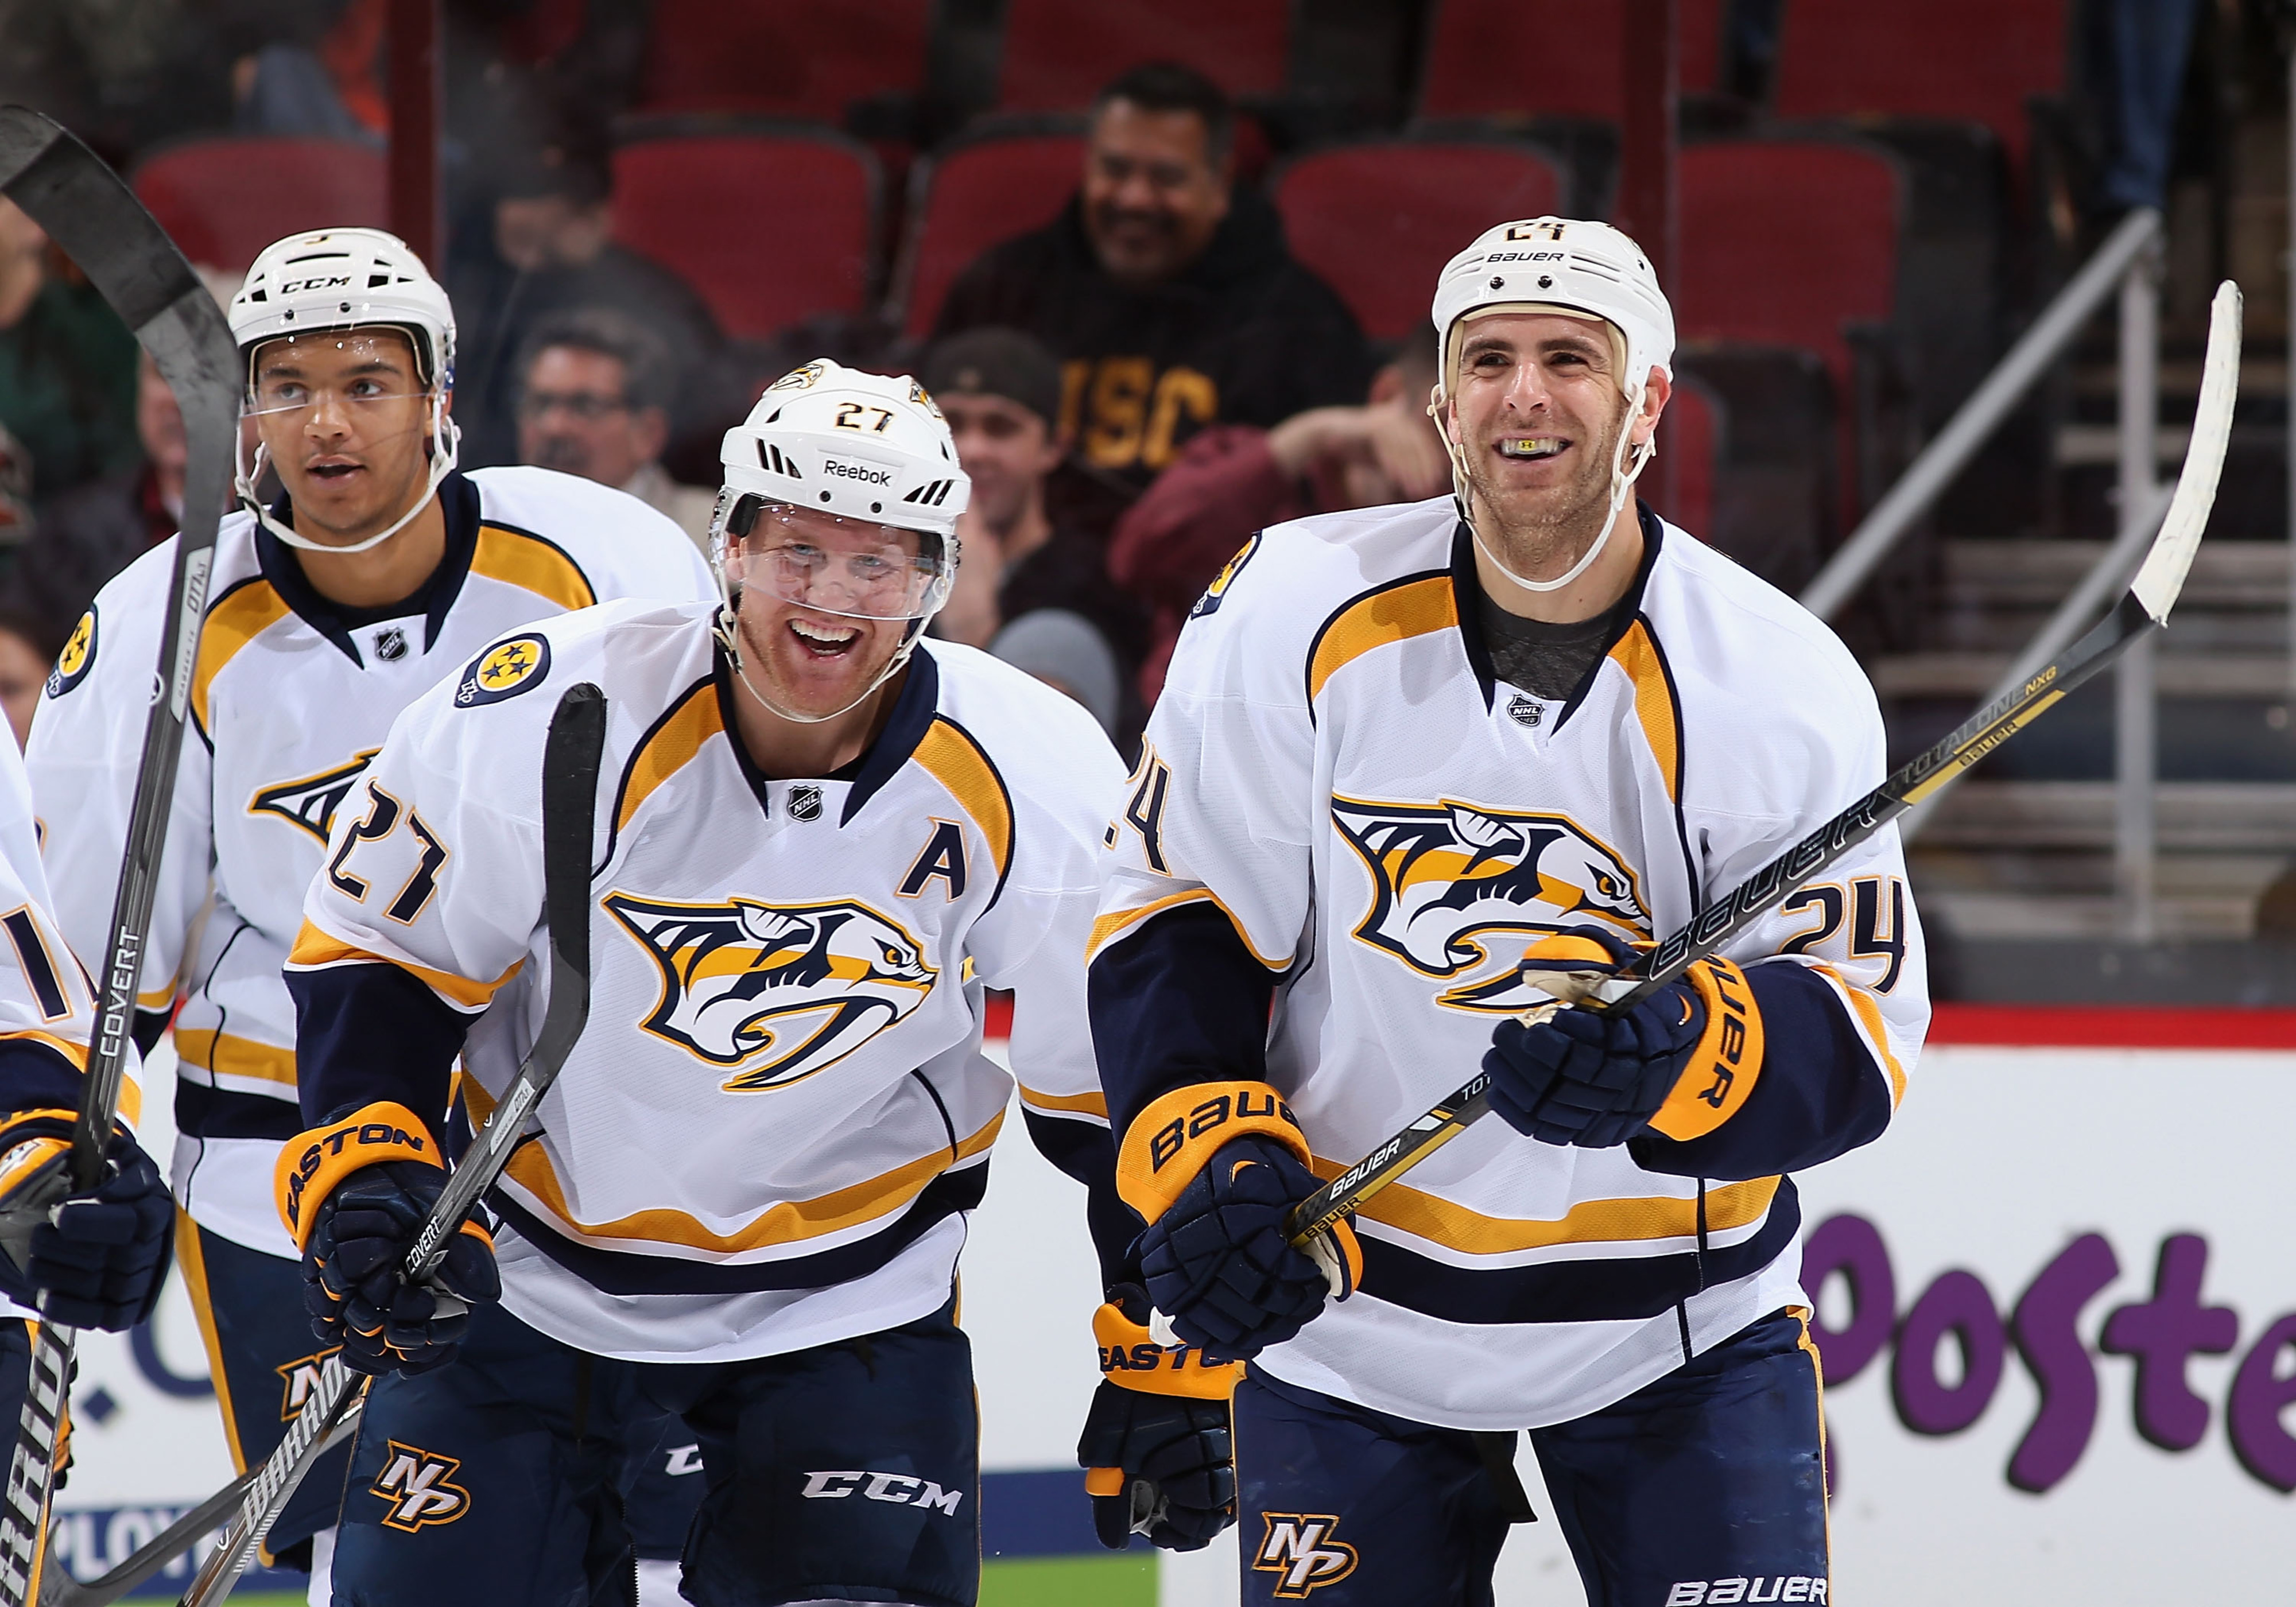 Patric Hornqvist #27 and Eric Nystrom #24 of the Nashville Predators celebrate after Nystrom scored a goal against the Phoenix Coyotes on October 31, 2013 at Jobing.com Arena in Glendale, Arizona.